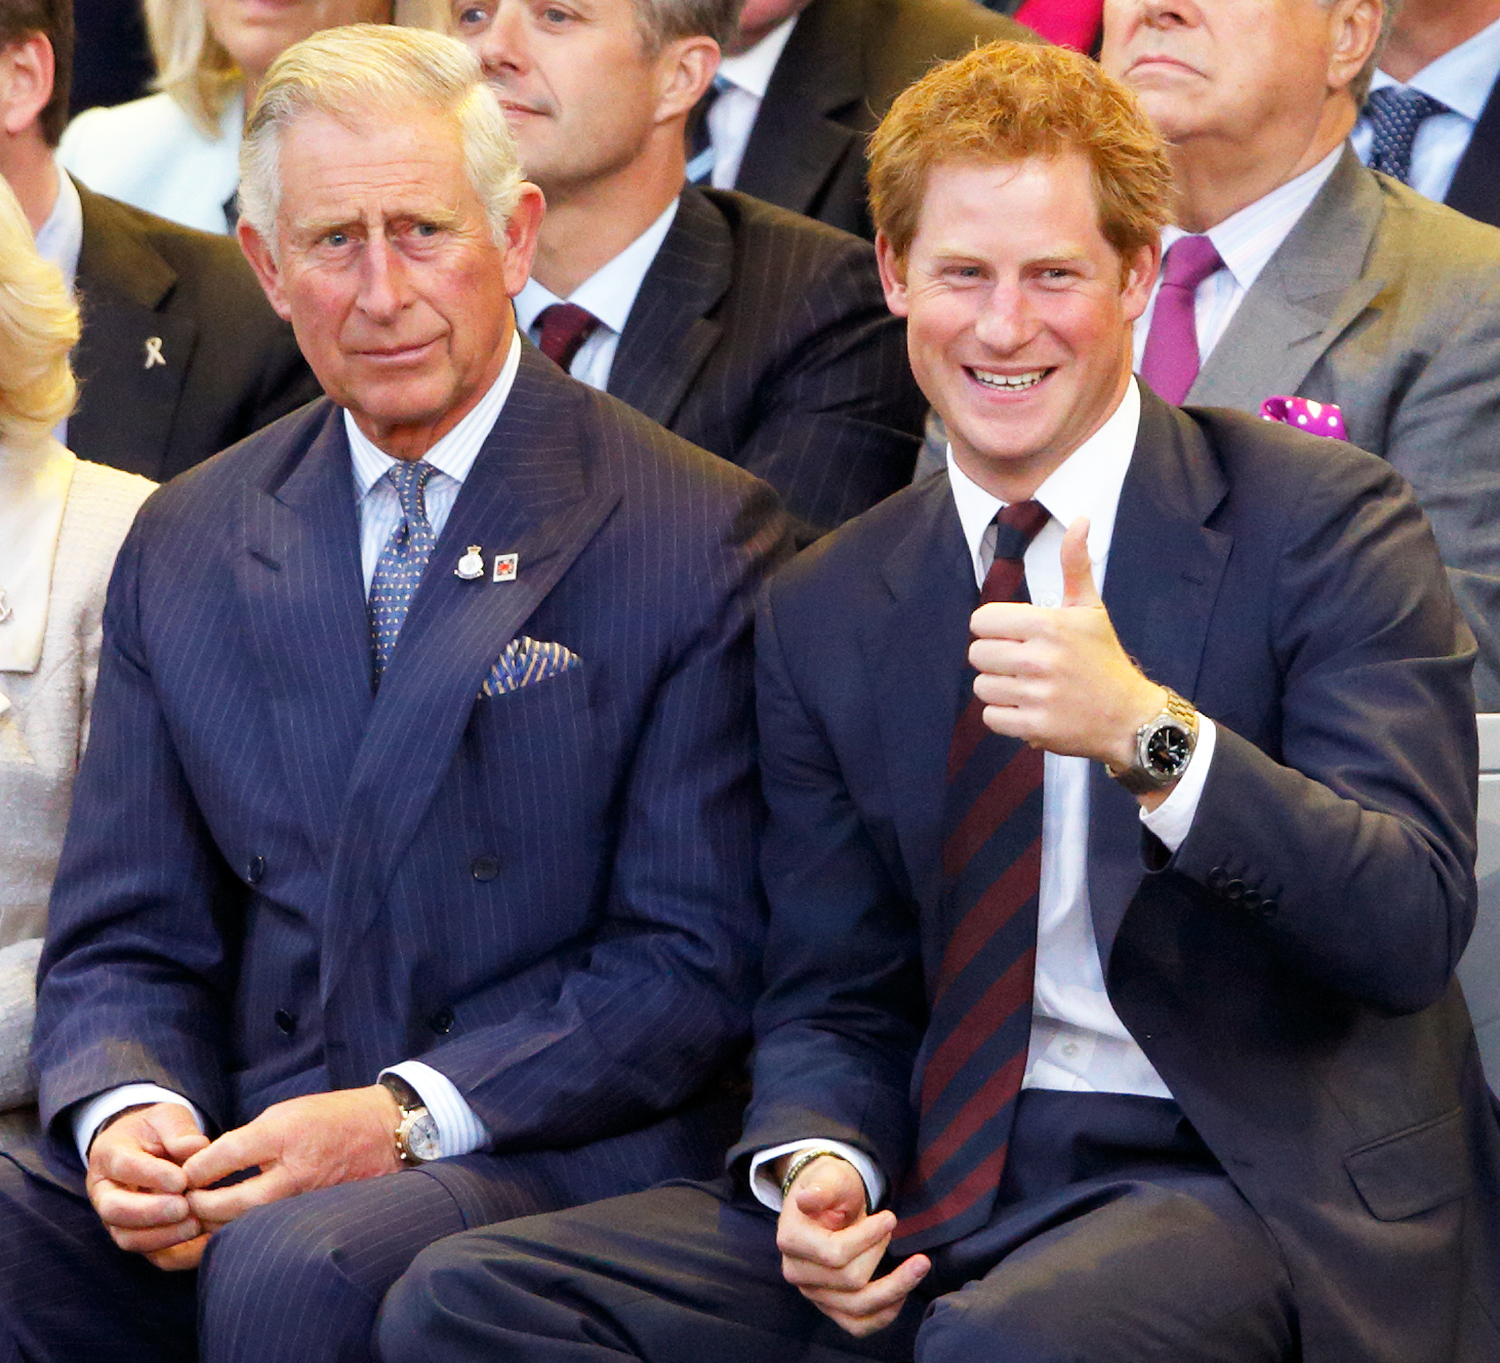 Prince Charles, Prince of Wales and Prince Harry attend the Opening Ceremony of the Invictus Games at the Queen Elizabeth Olympic Park on September 10, 2014 in London, England.